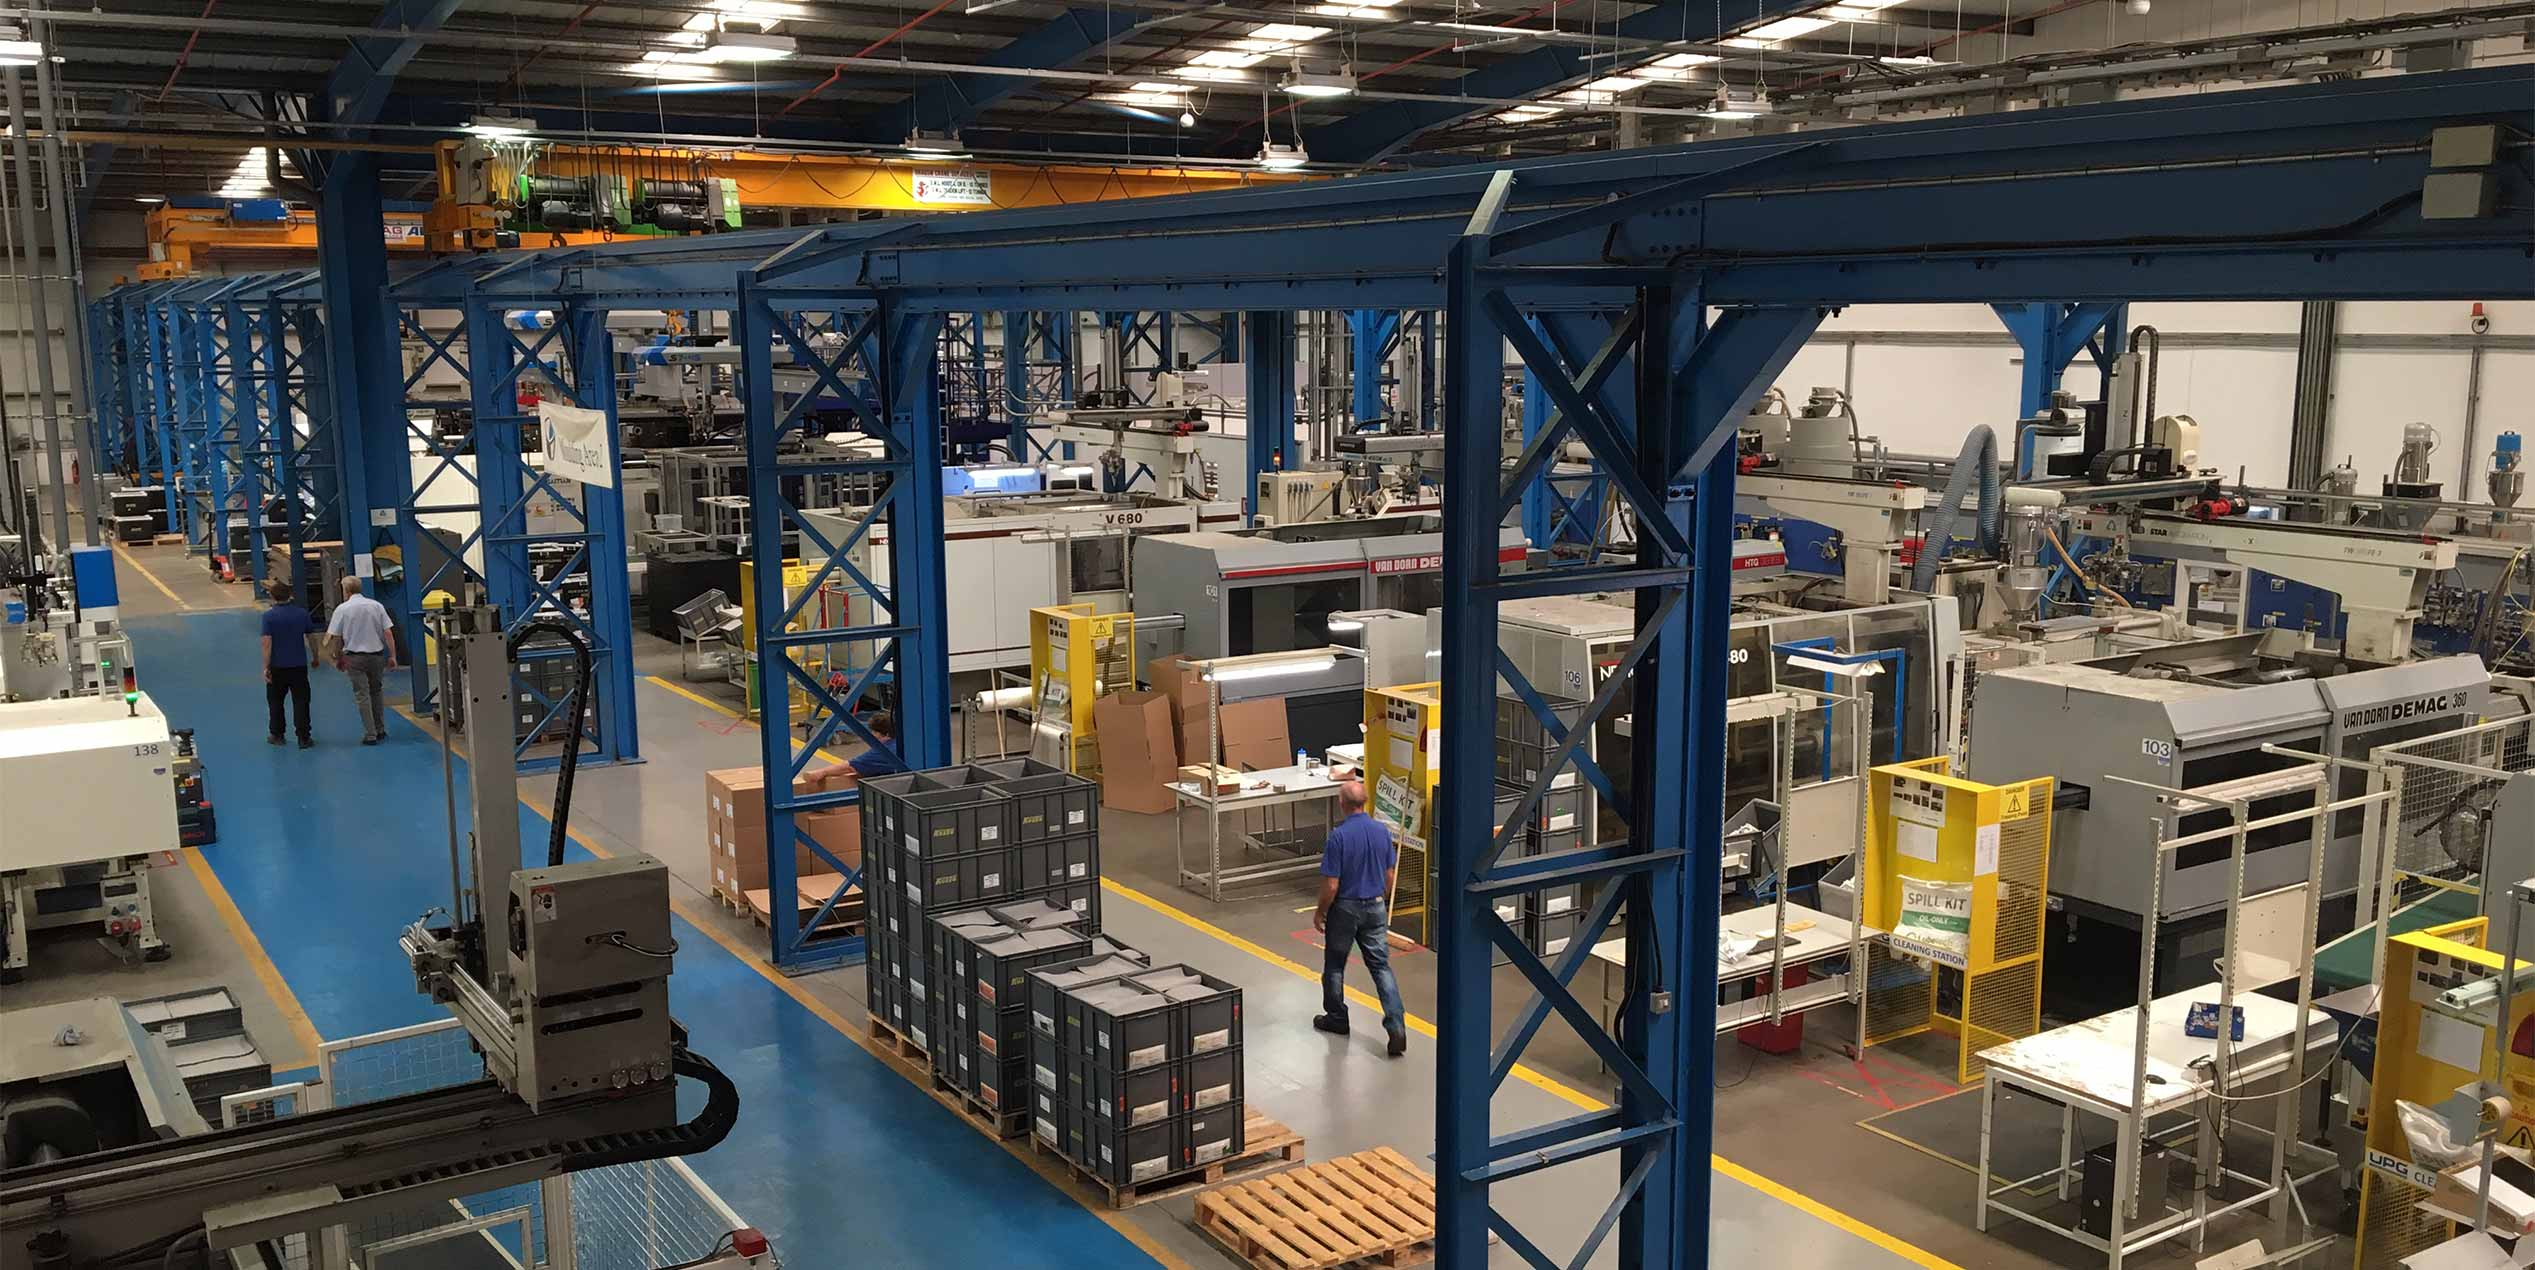 Large injection molding manufacturing facility